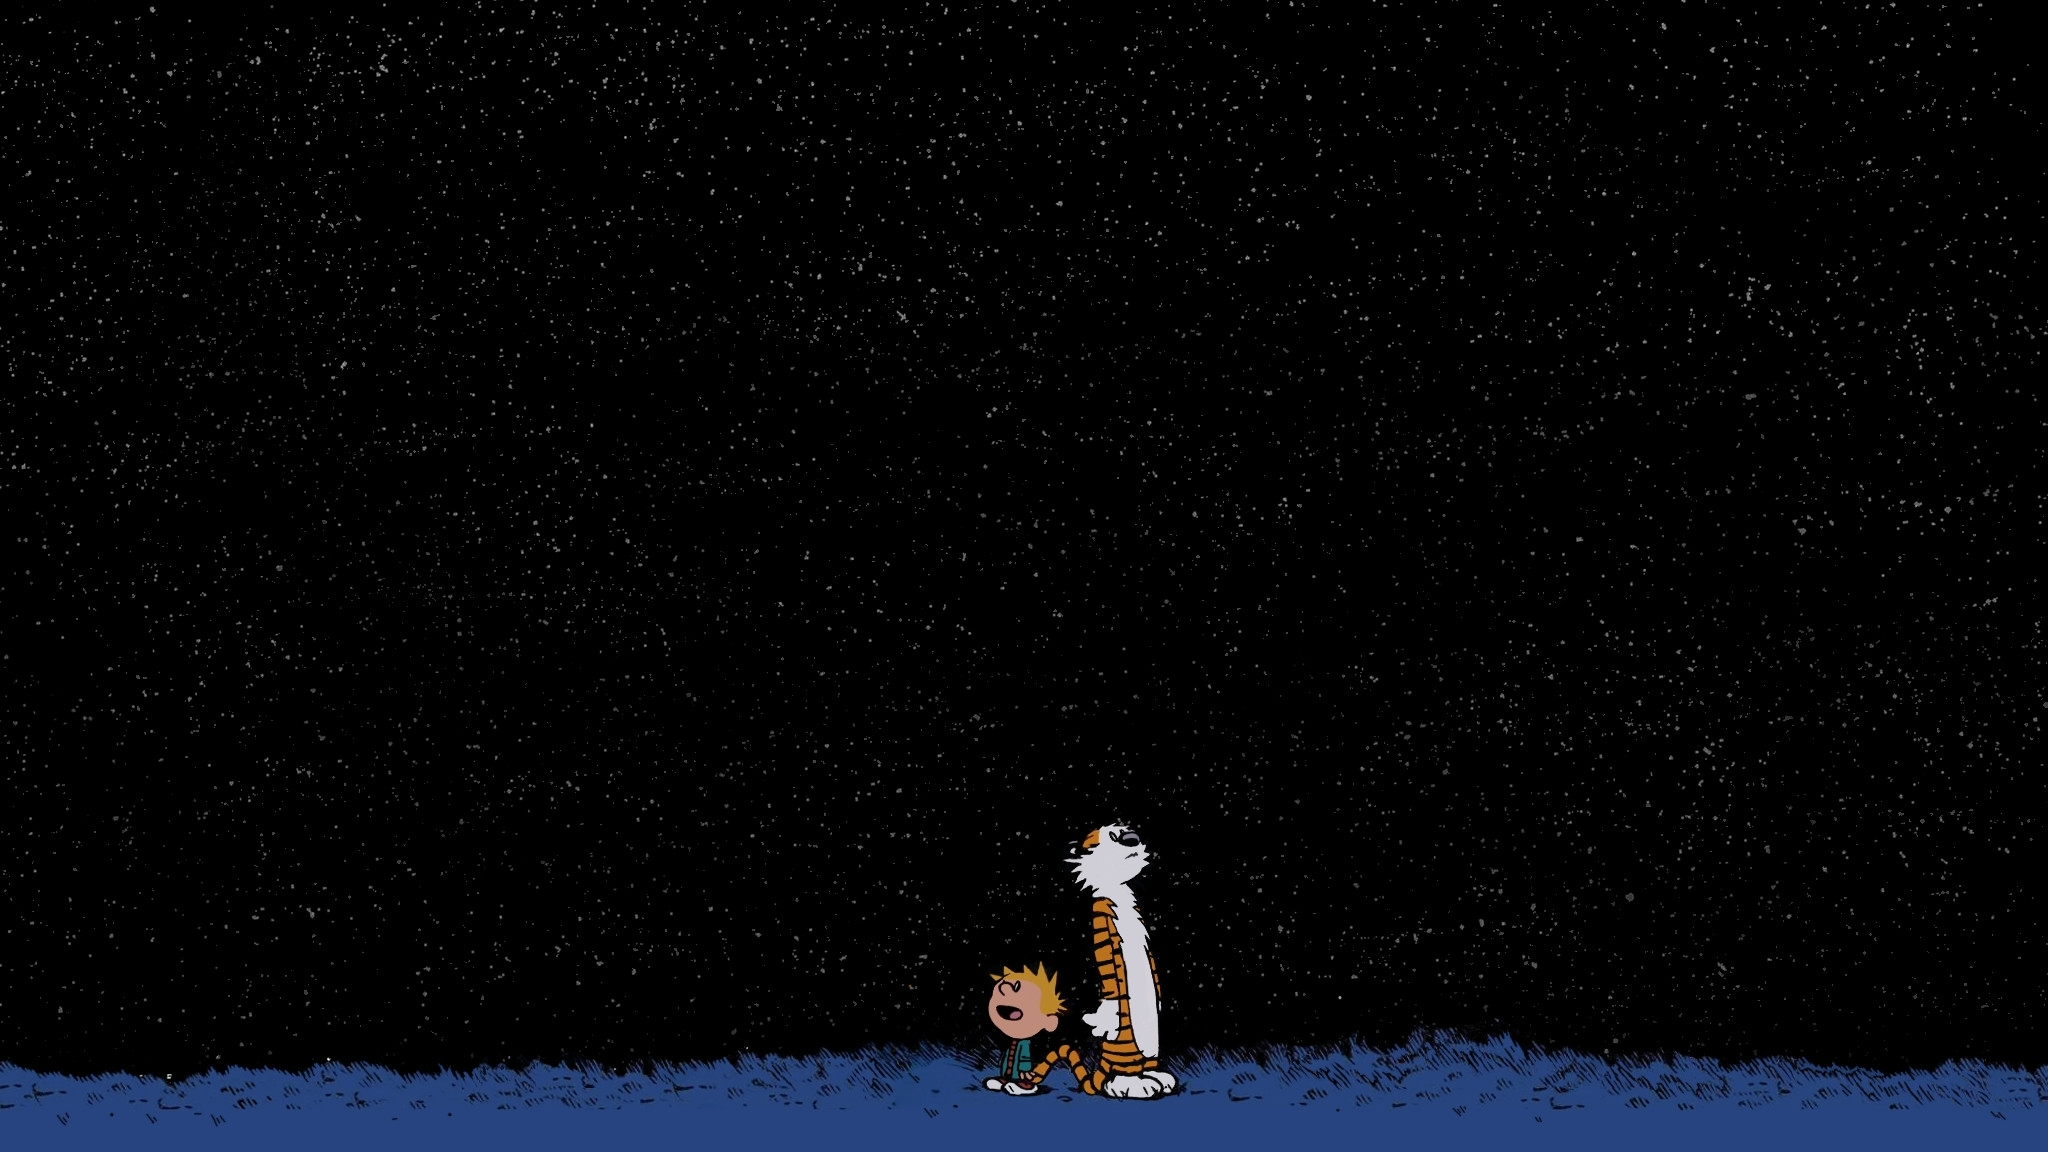 calvin and hobbes desktop wallpaper ·①